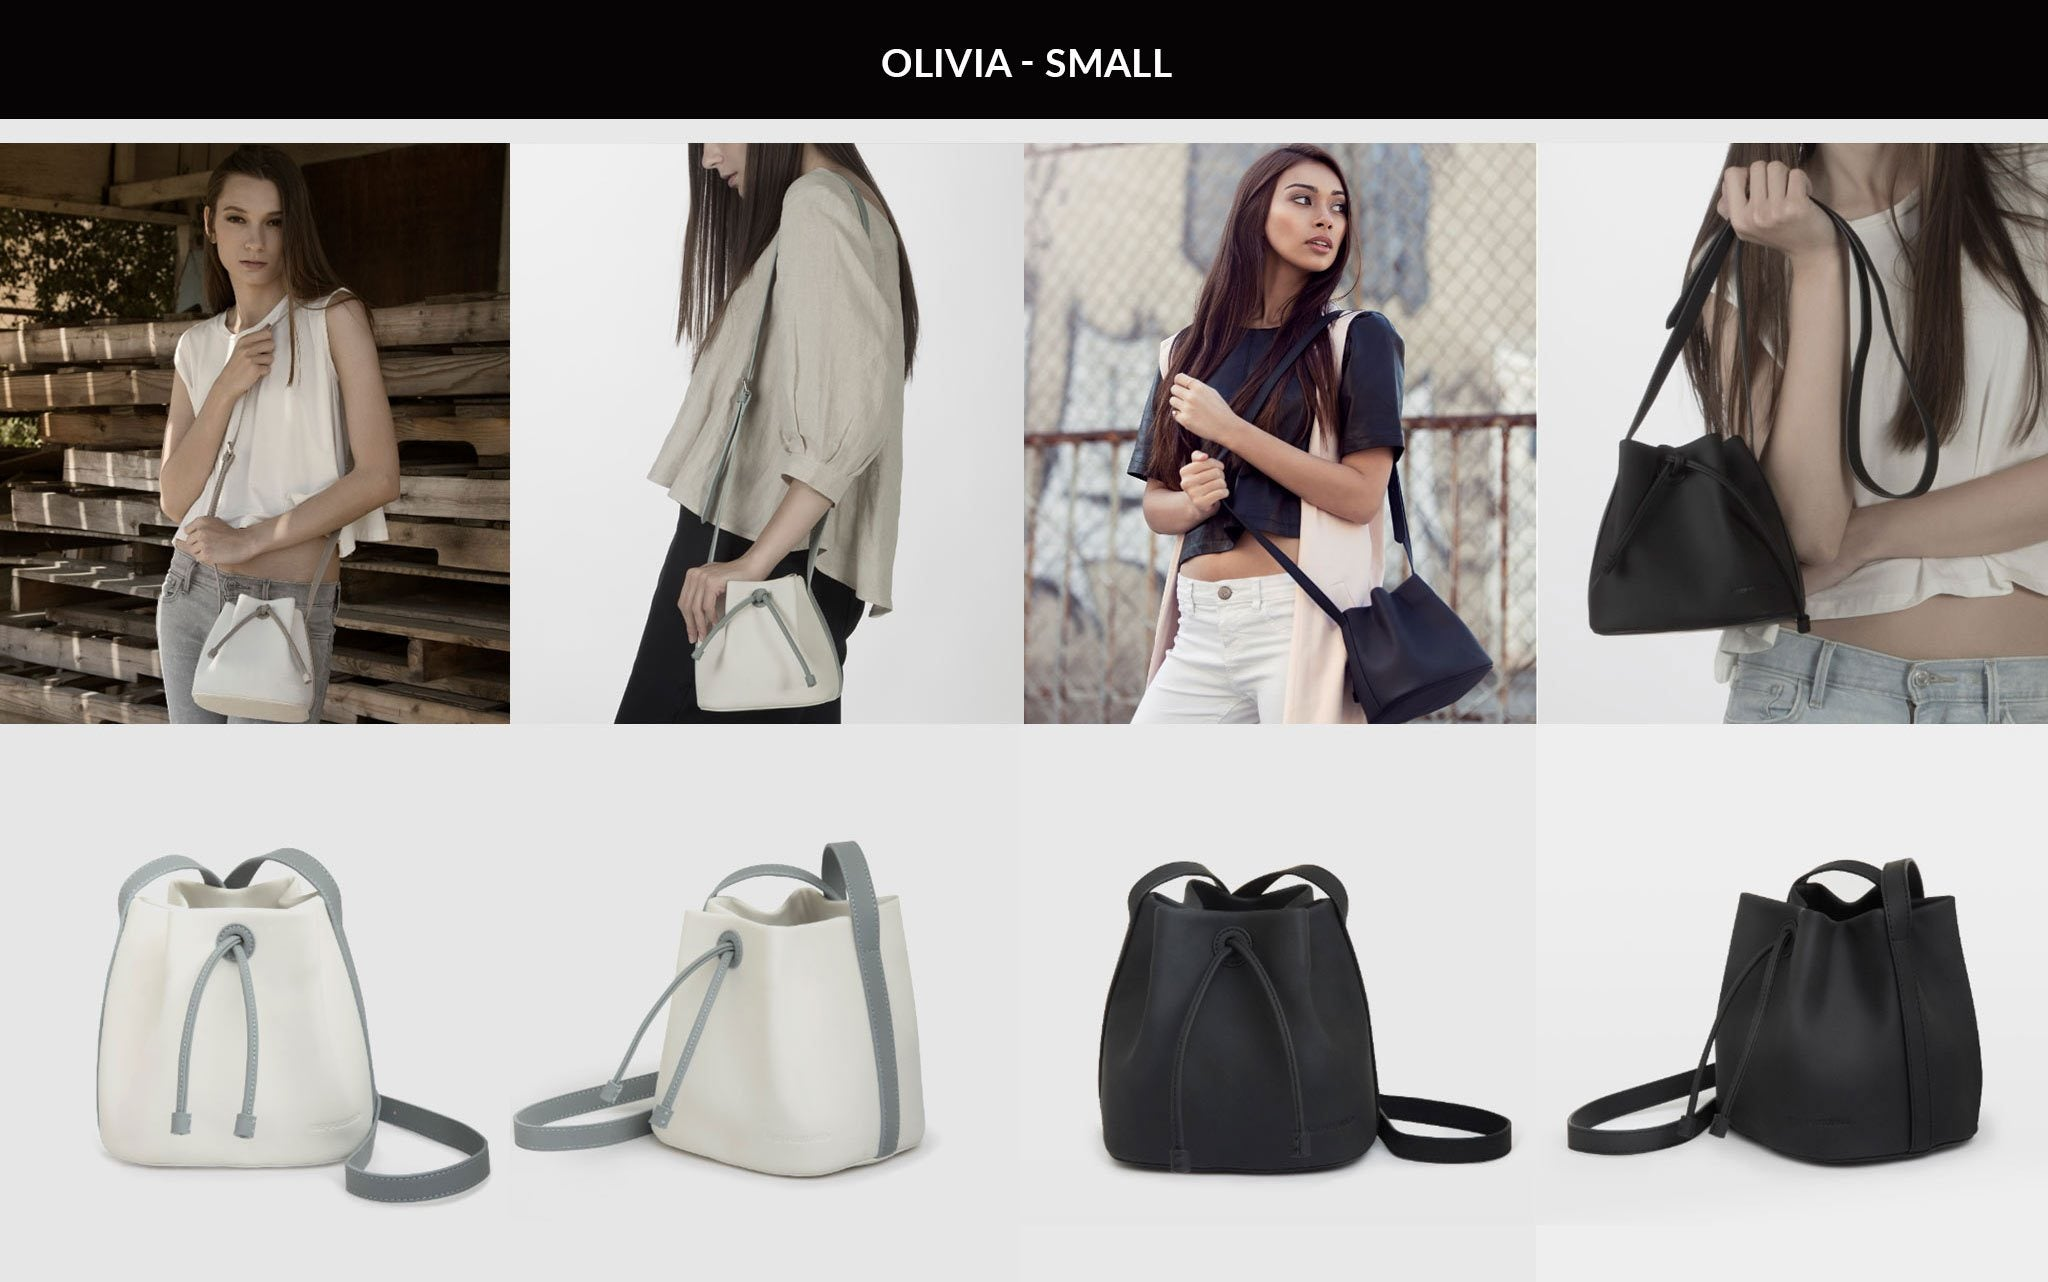 OLIVIA Bucket Bag - Small